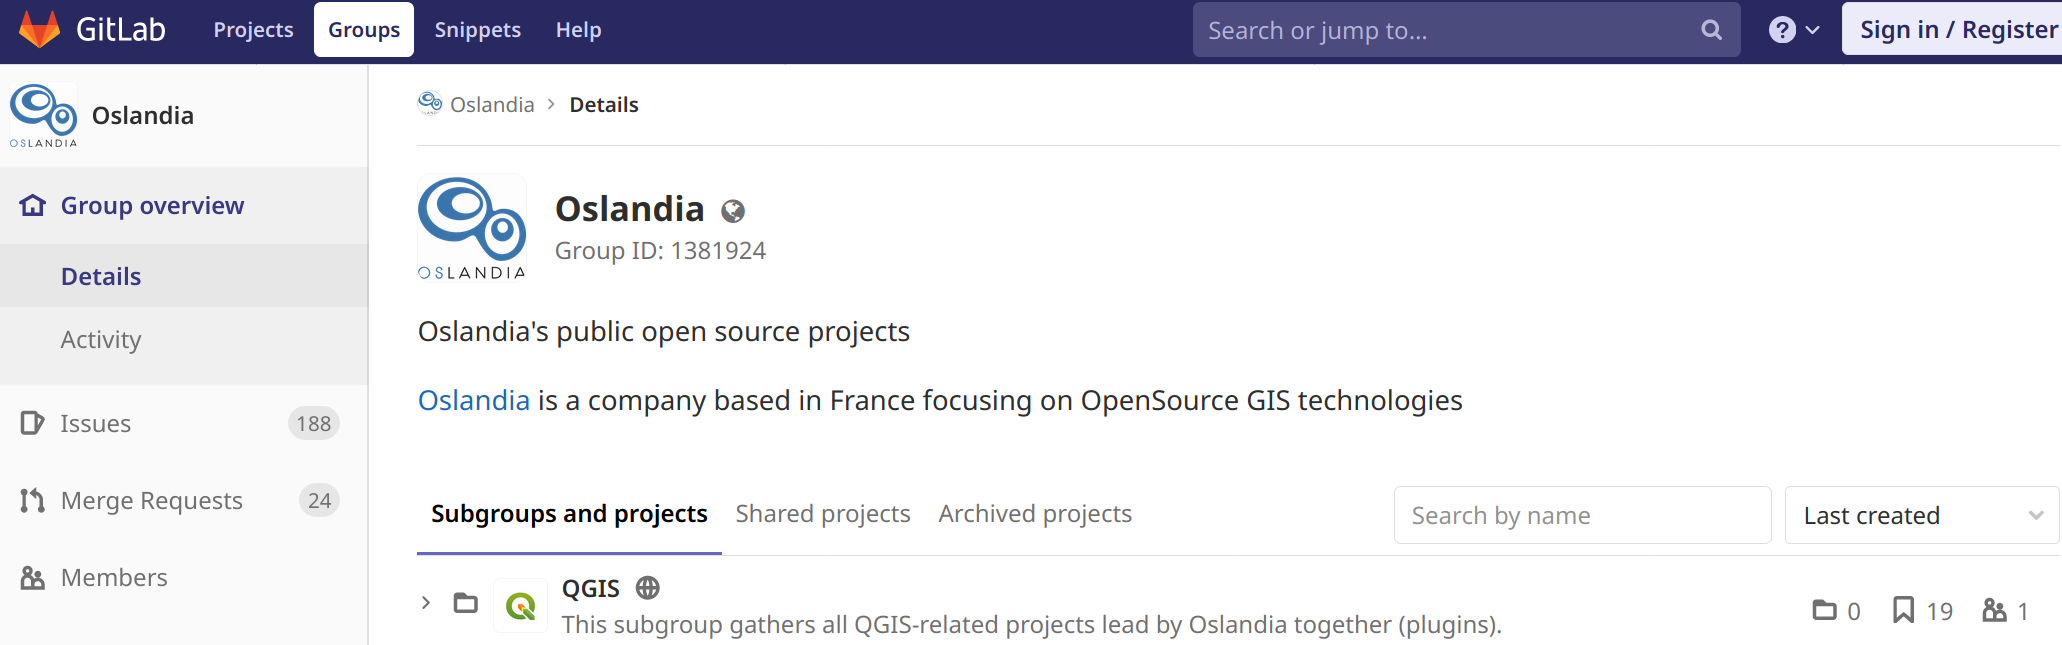 Oslandia migrates from GitHub to GitLab